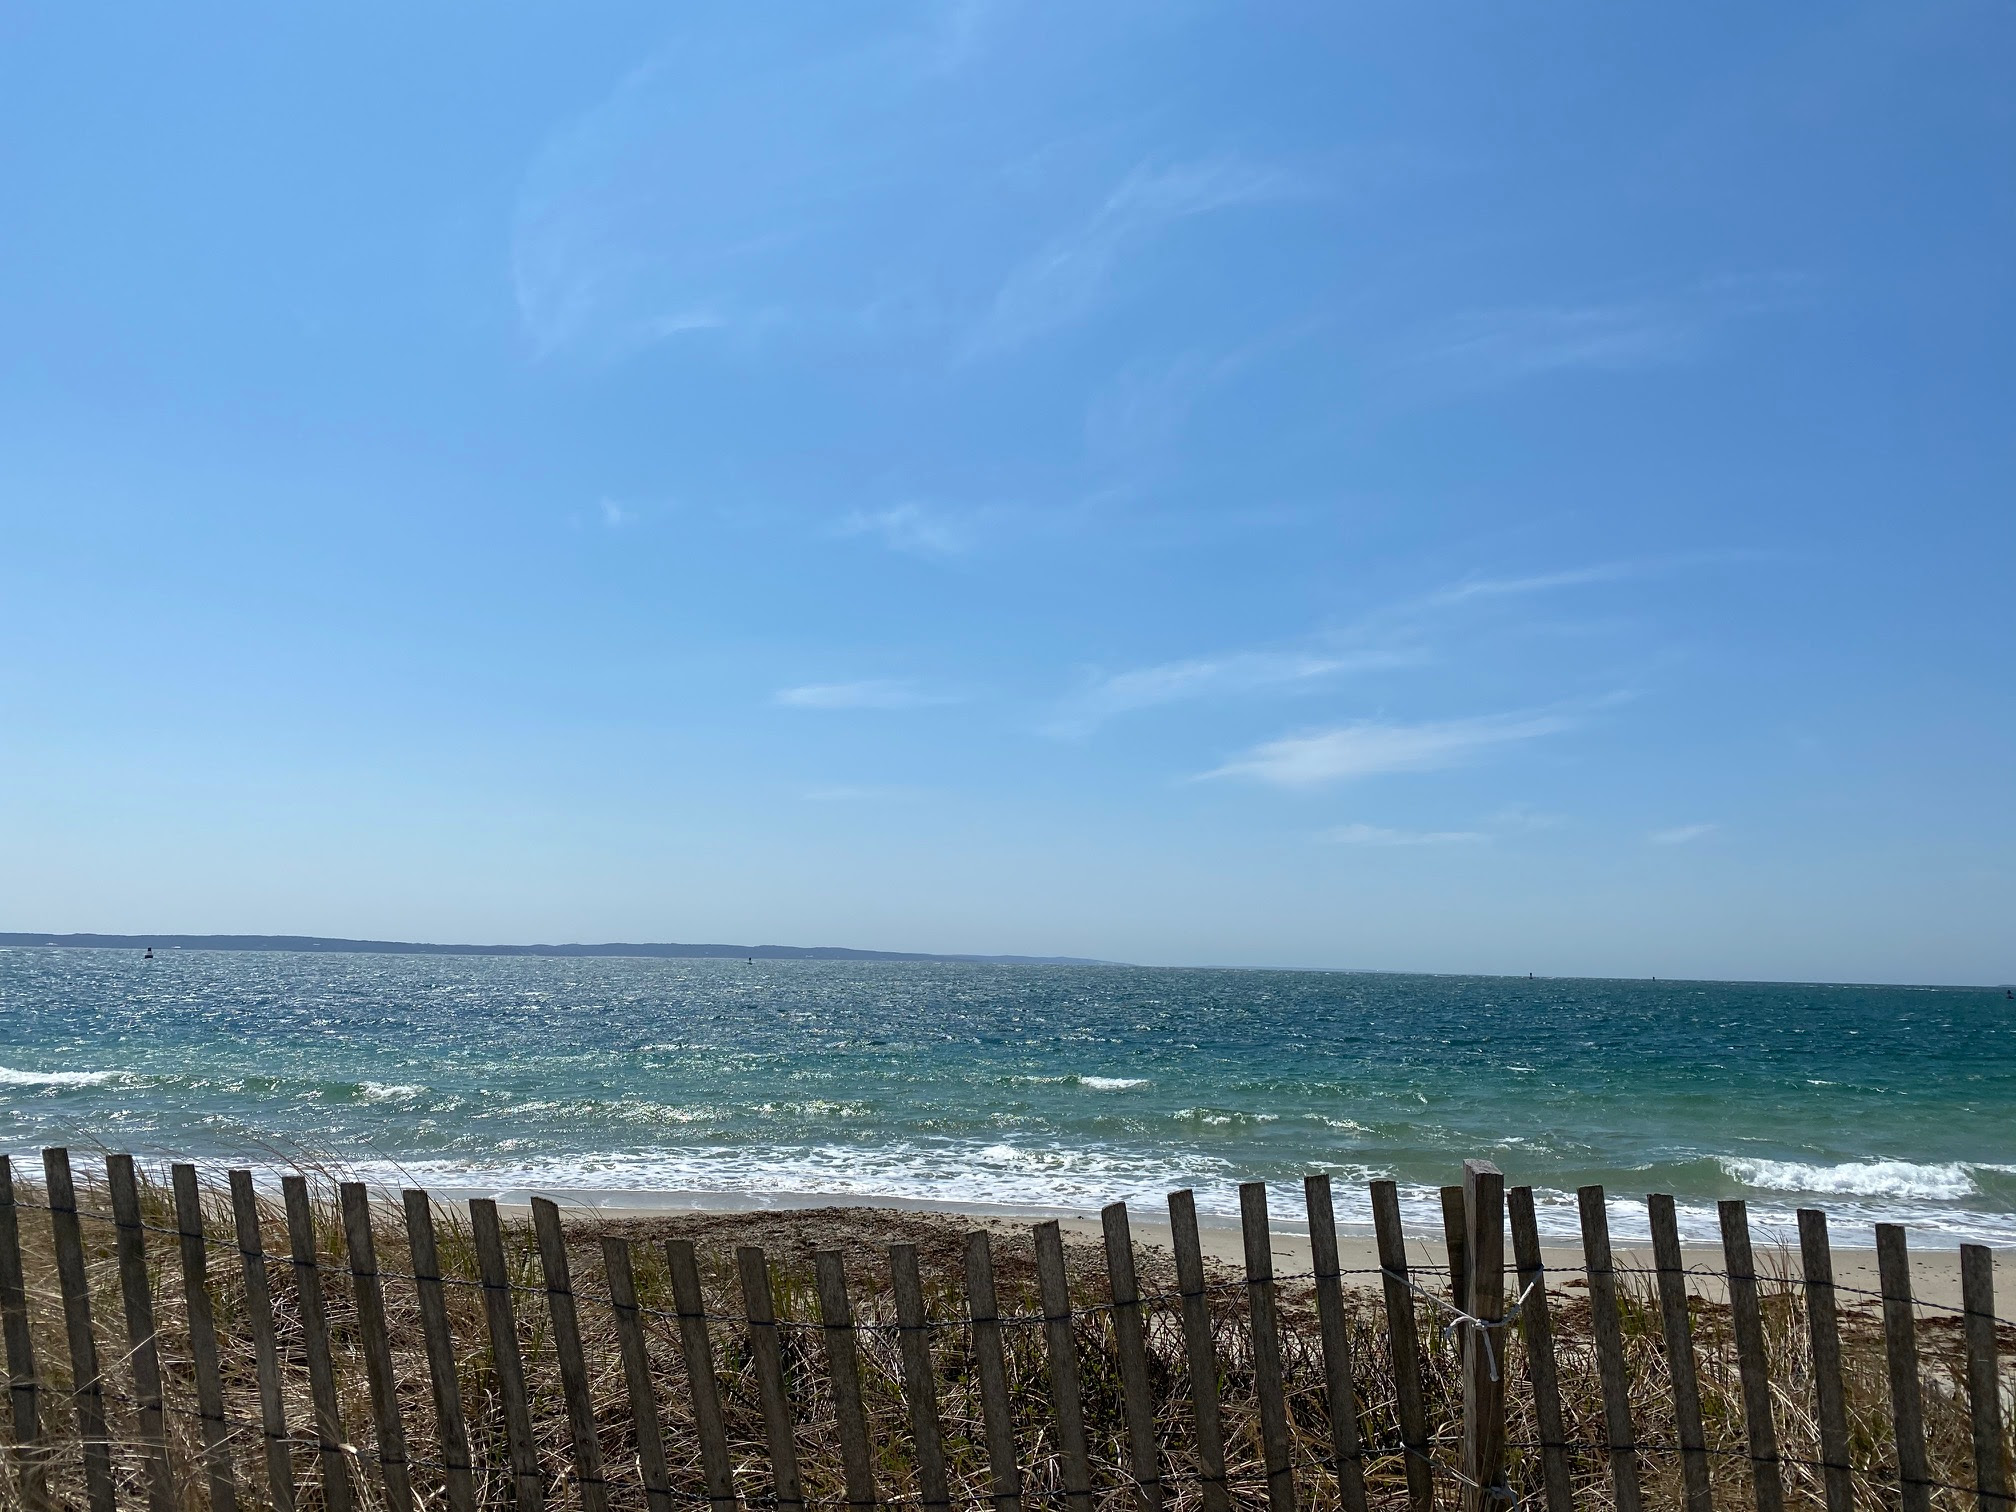 Photo of the beach with a dune fence in front.